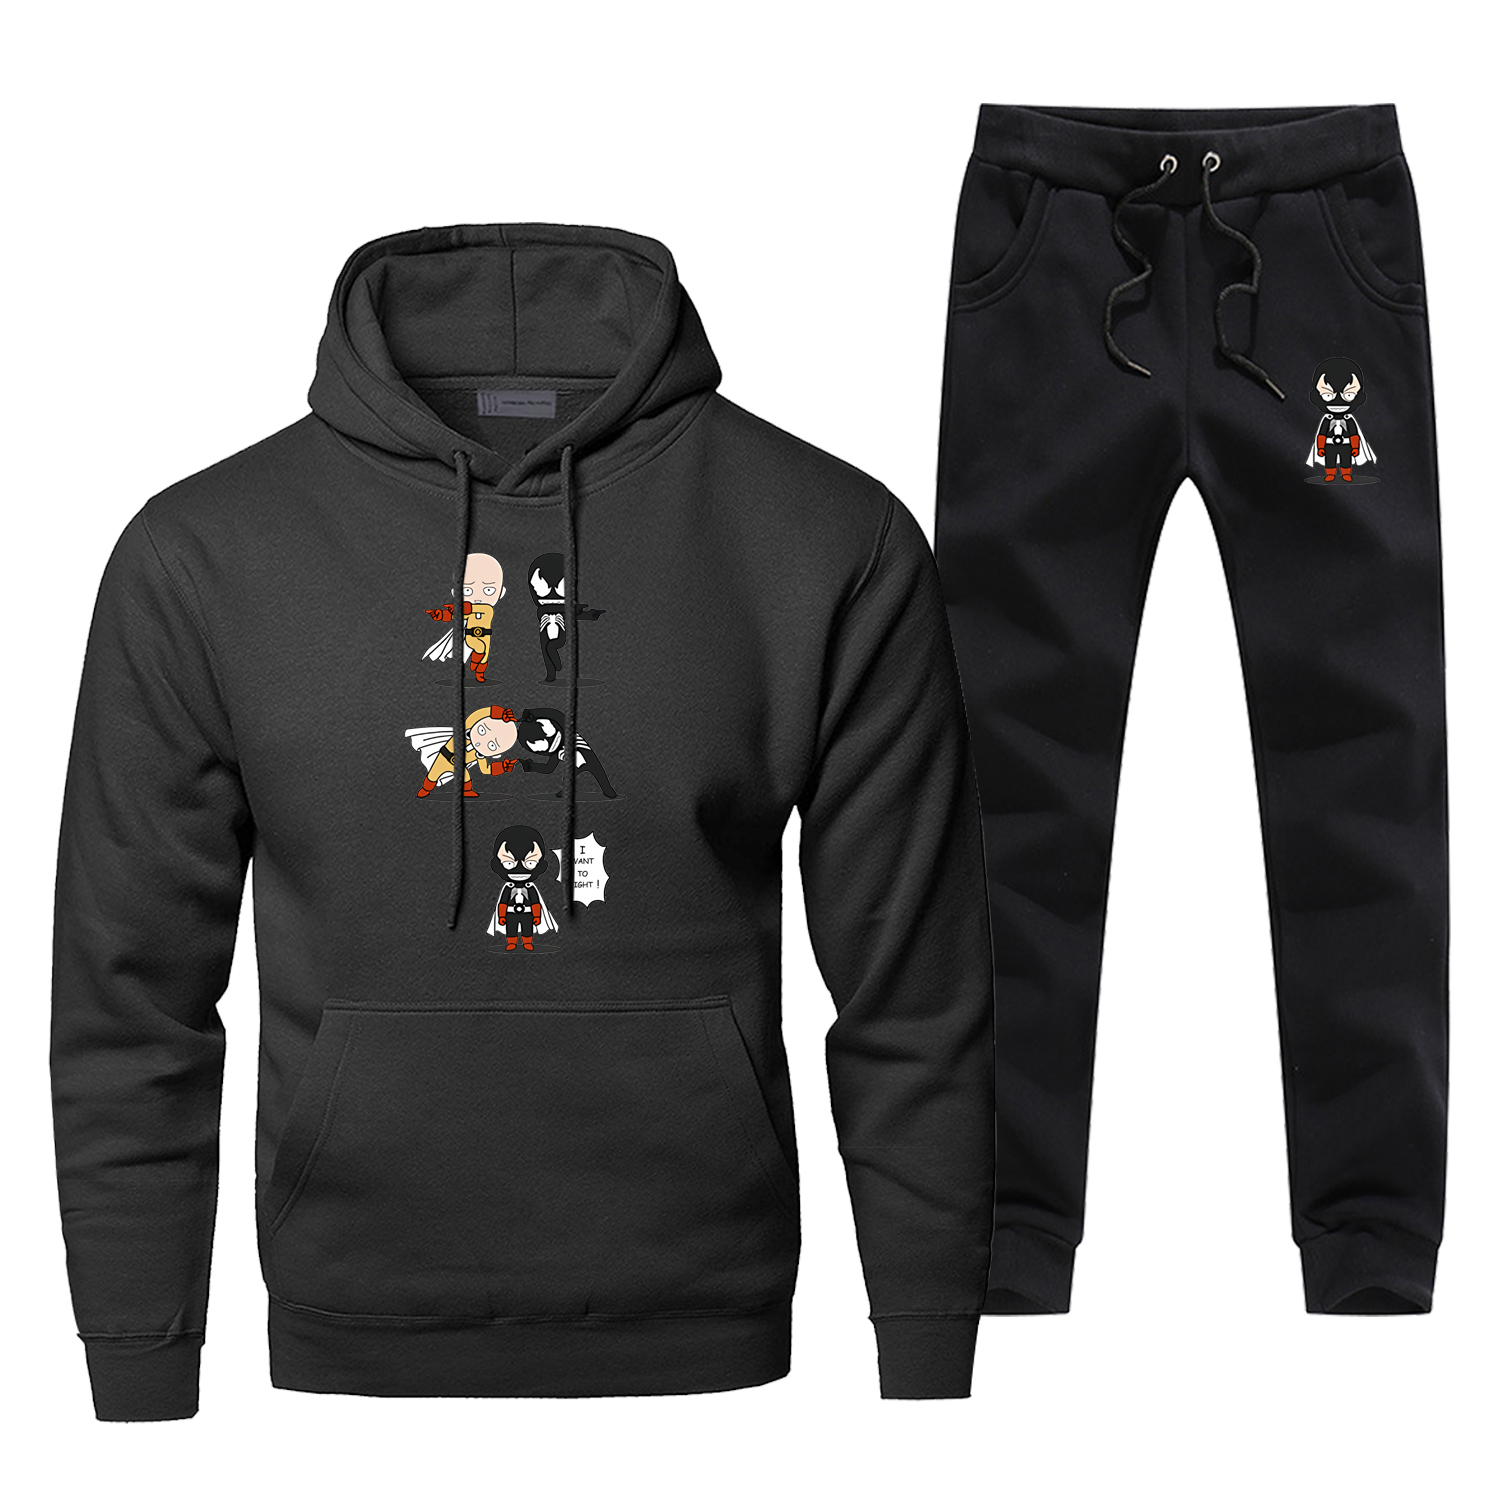 Venom One Punch Man Black Complete Man Tracksuit Super Hero Japan Anime Pants Sweatshirt Fashion Harajuku Sweatsuit 2 Piece Set